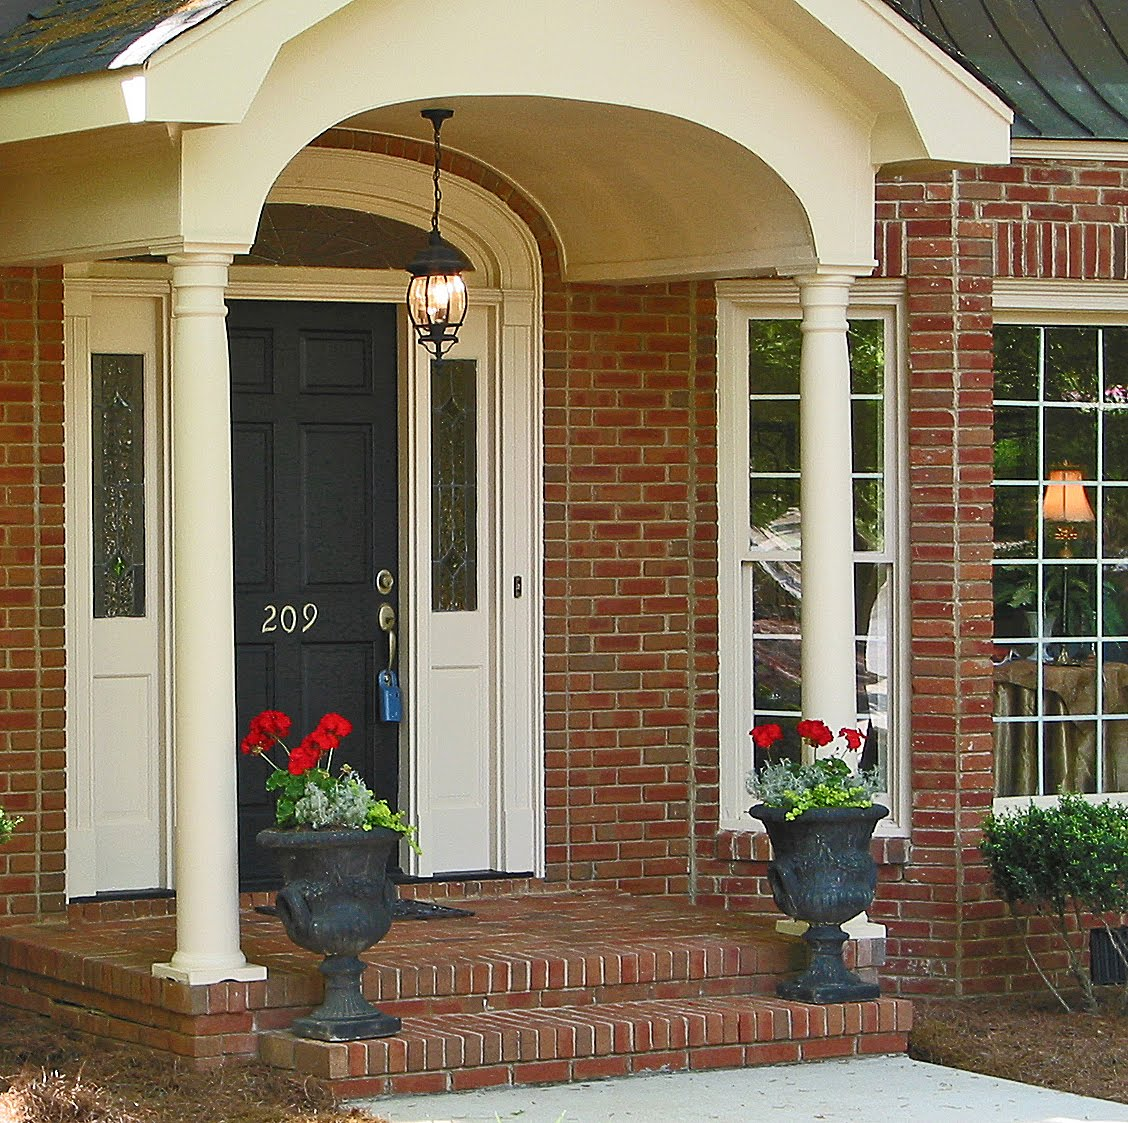 Home Design Ideas Front: Goodbye, House. Hello, Home! Blog : Home Staging -- Why To